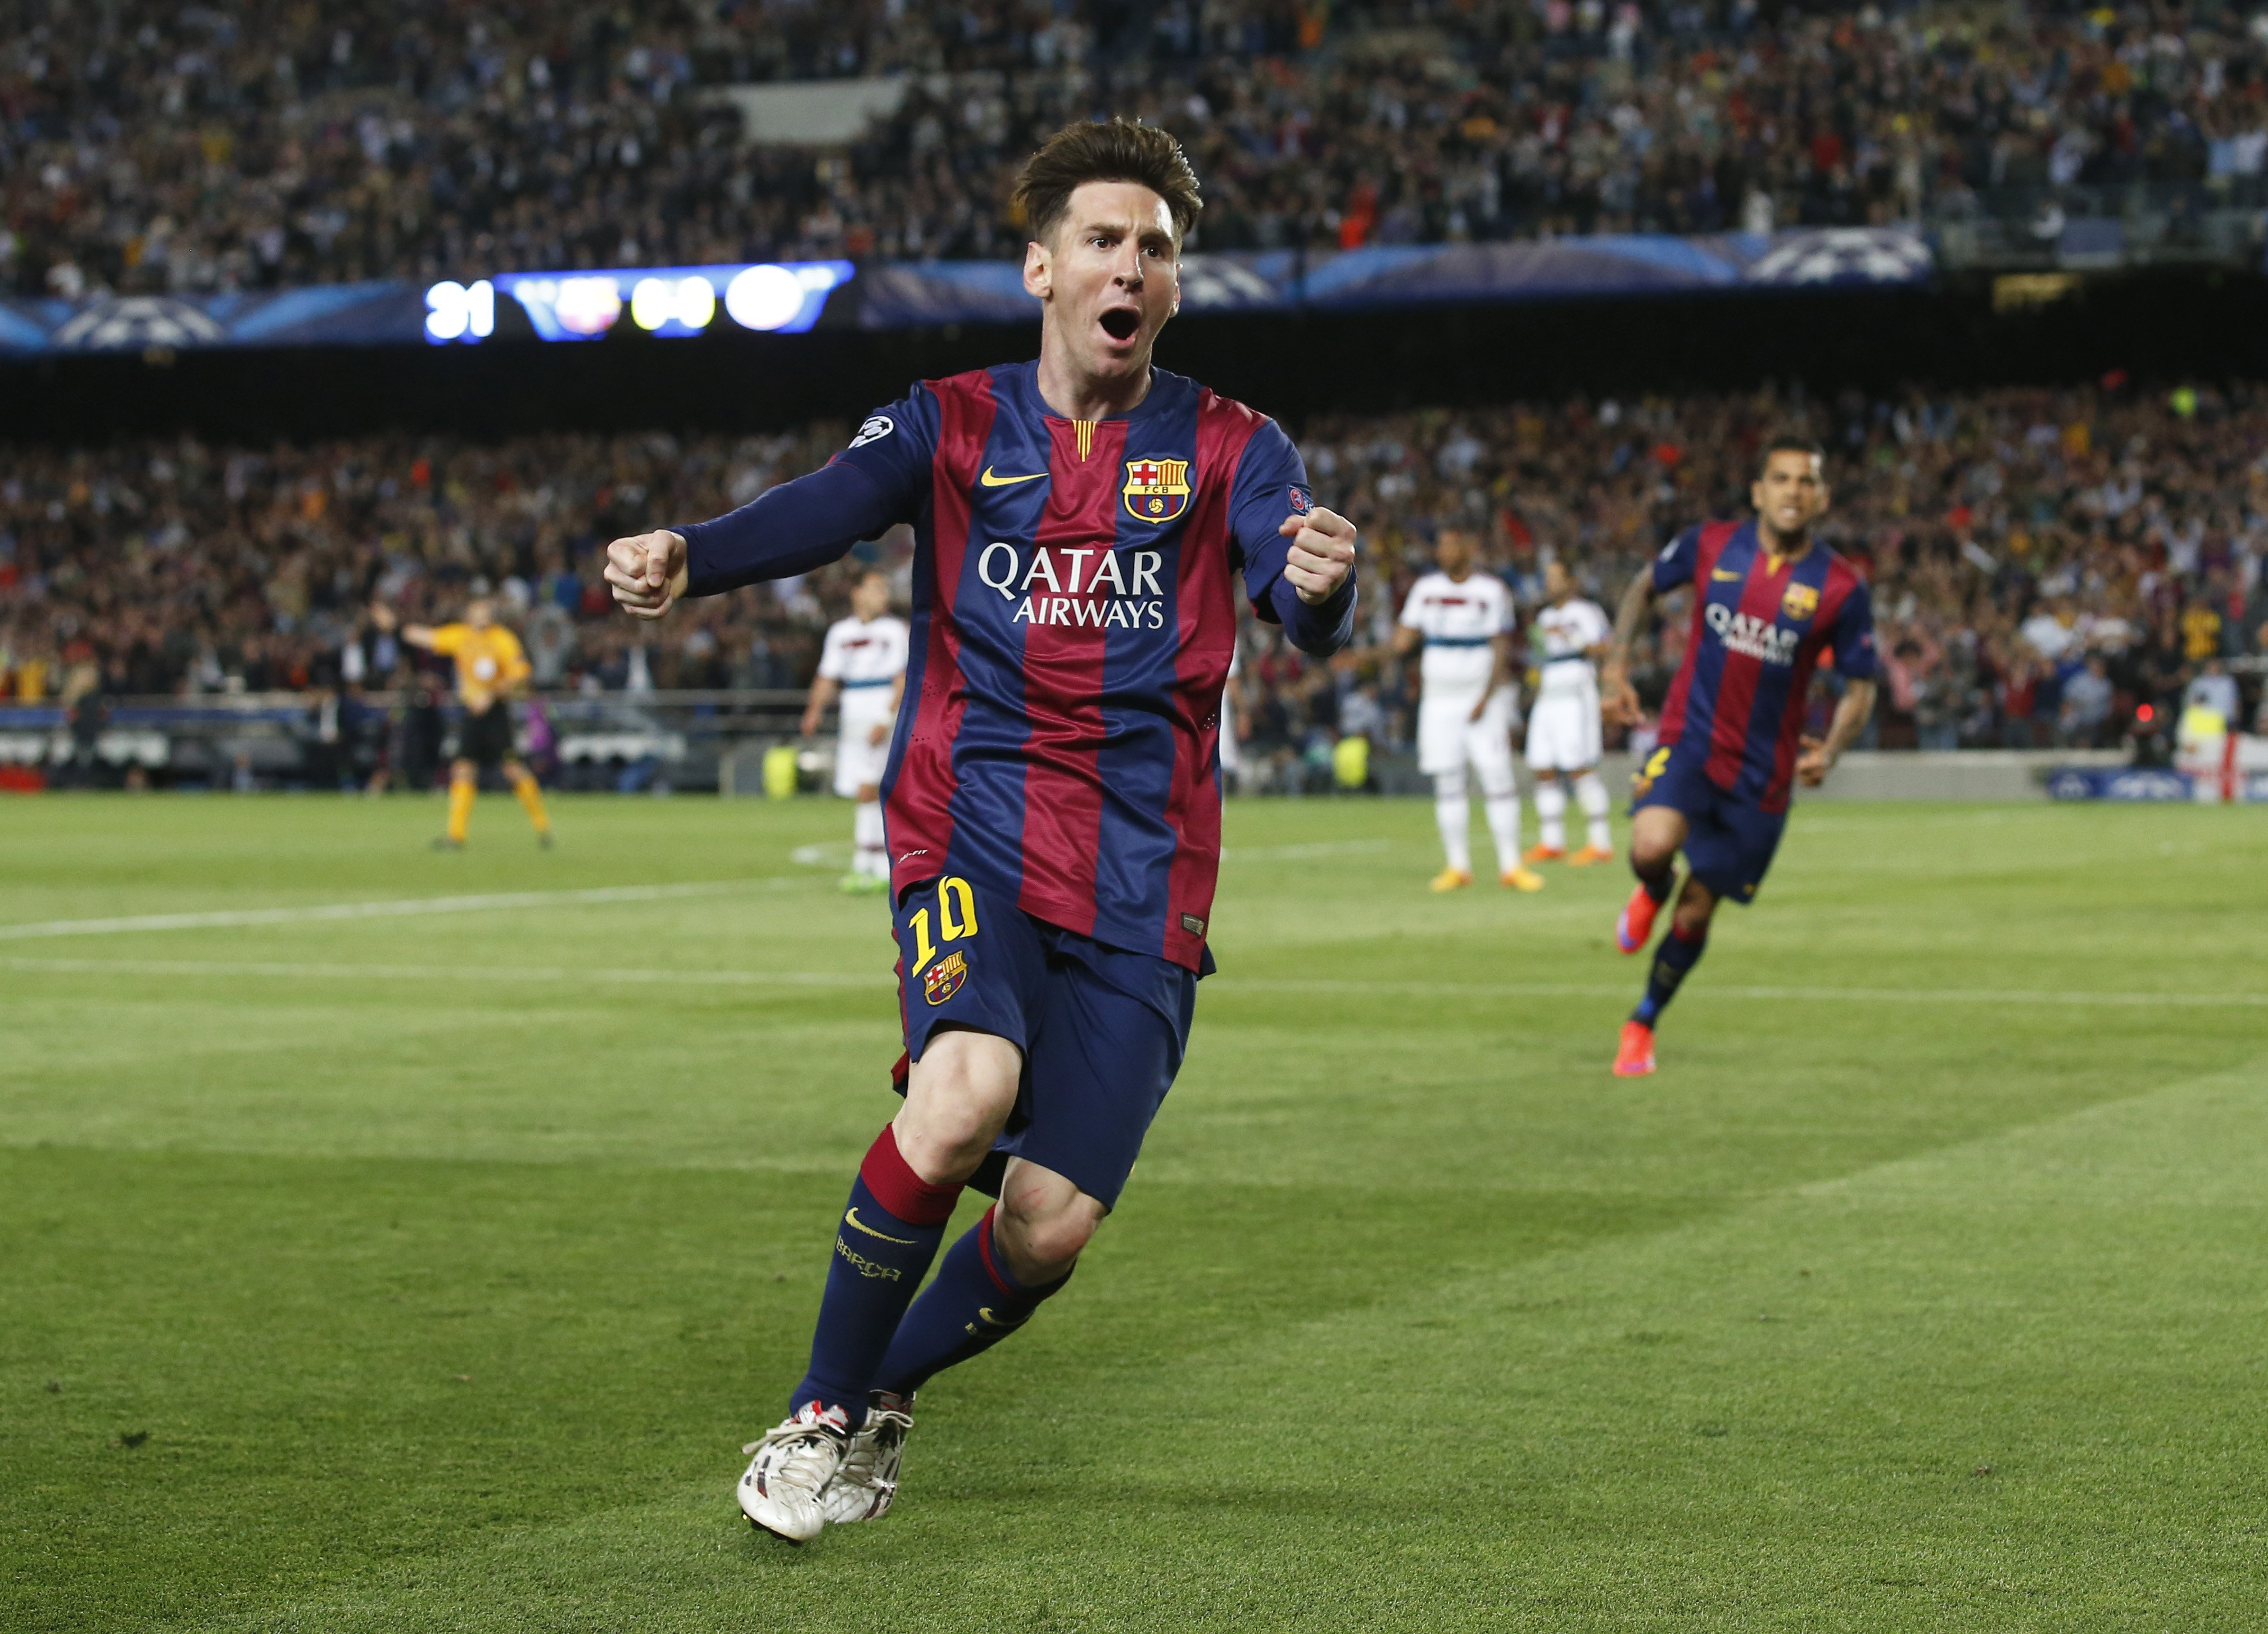 Barcelona's Lionel Messi celebrates his first goal  against Bayern Munich in the UEFA Champions League Semi Final First Leg at The Nou Camp in Barcelona on May 5, 2015.